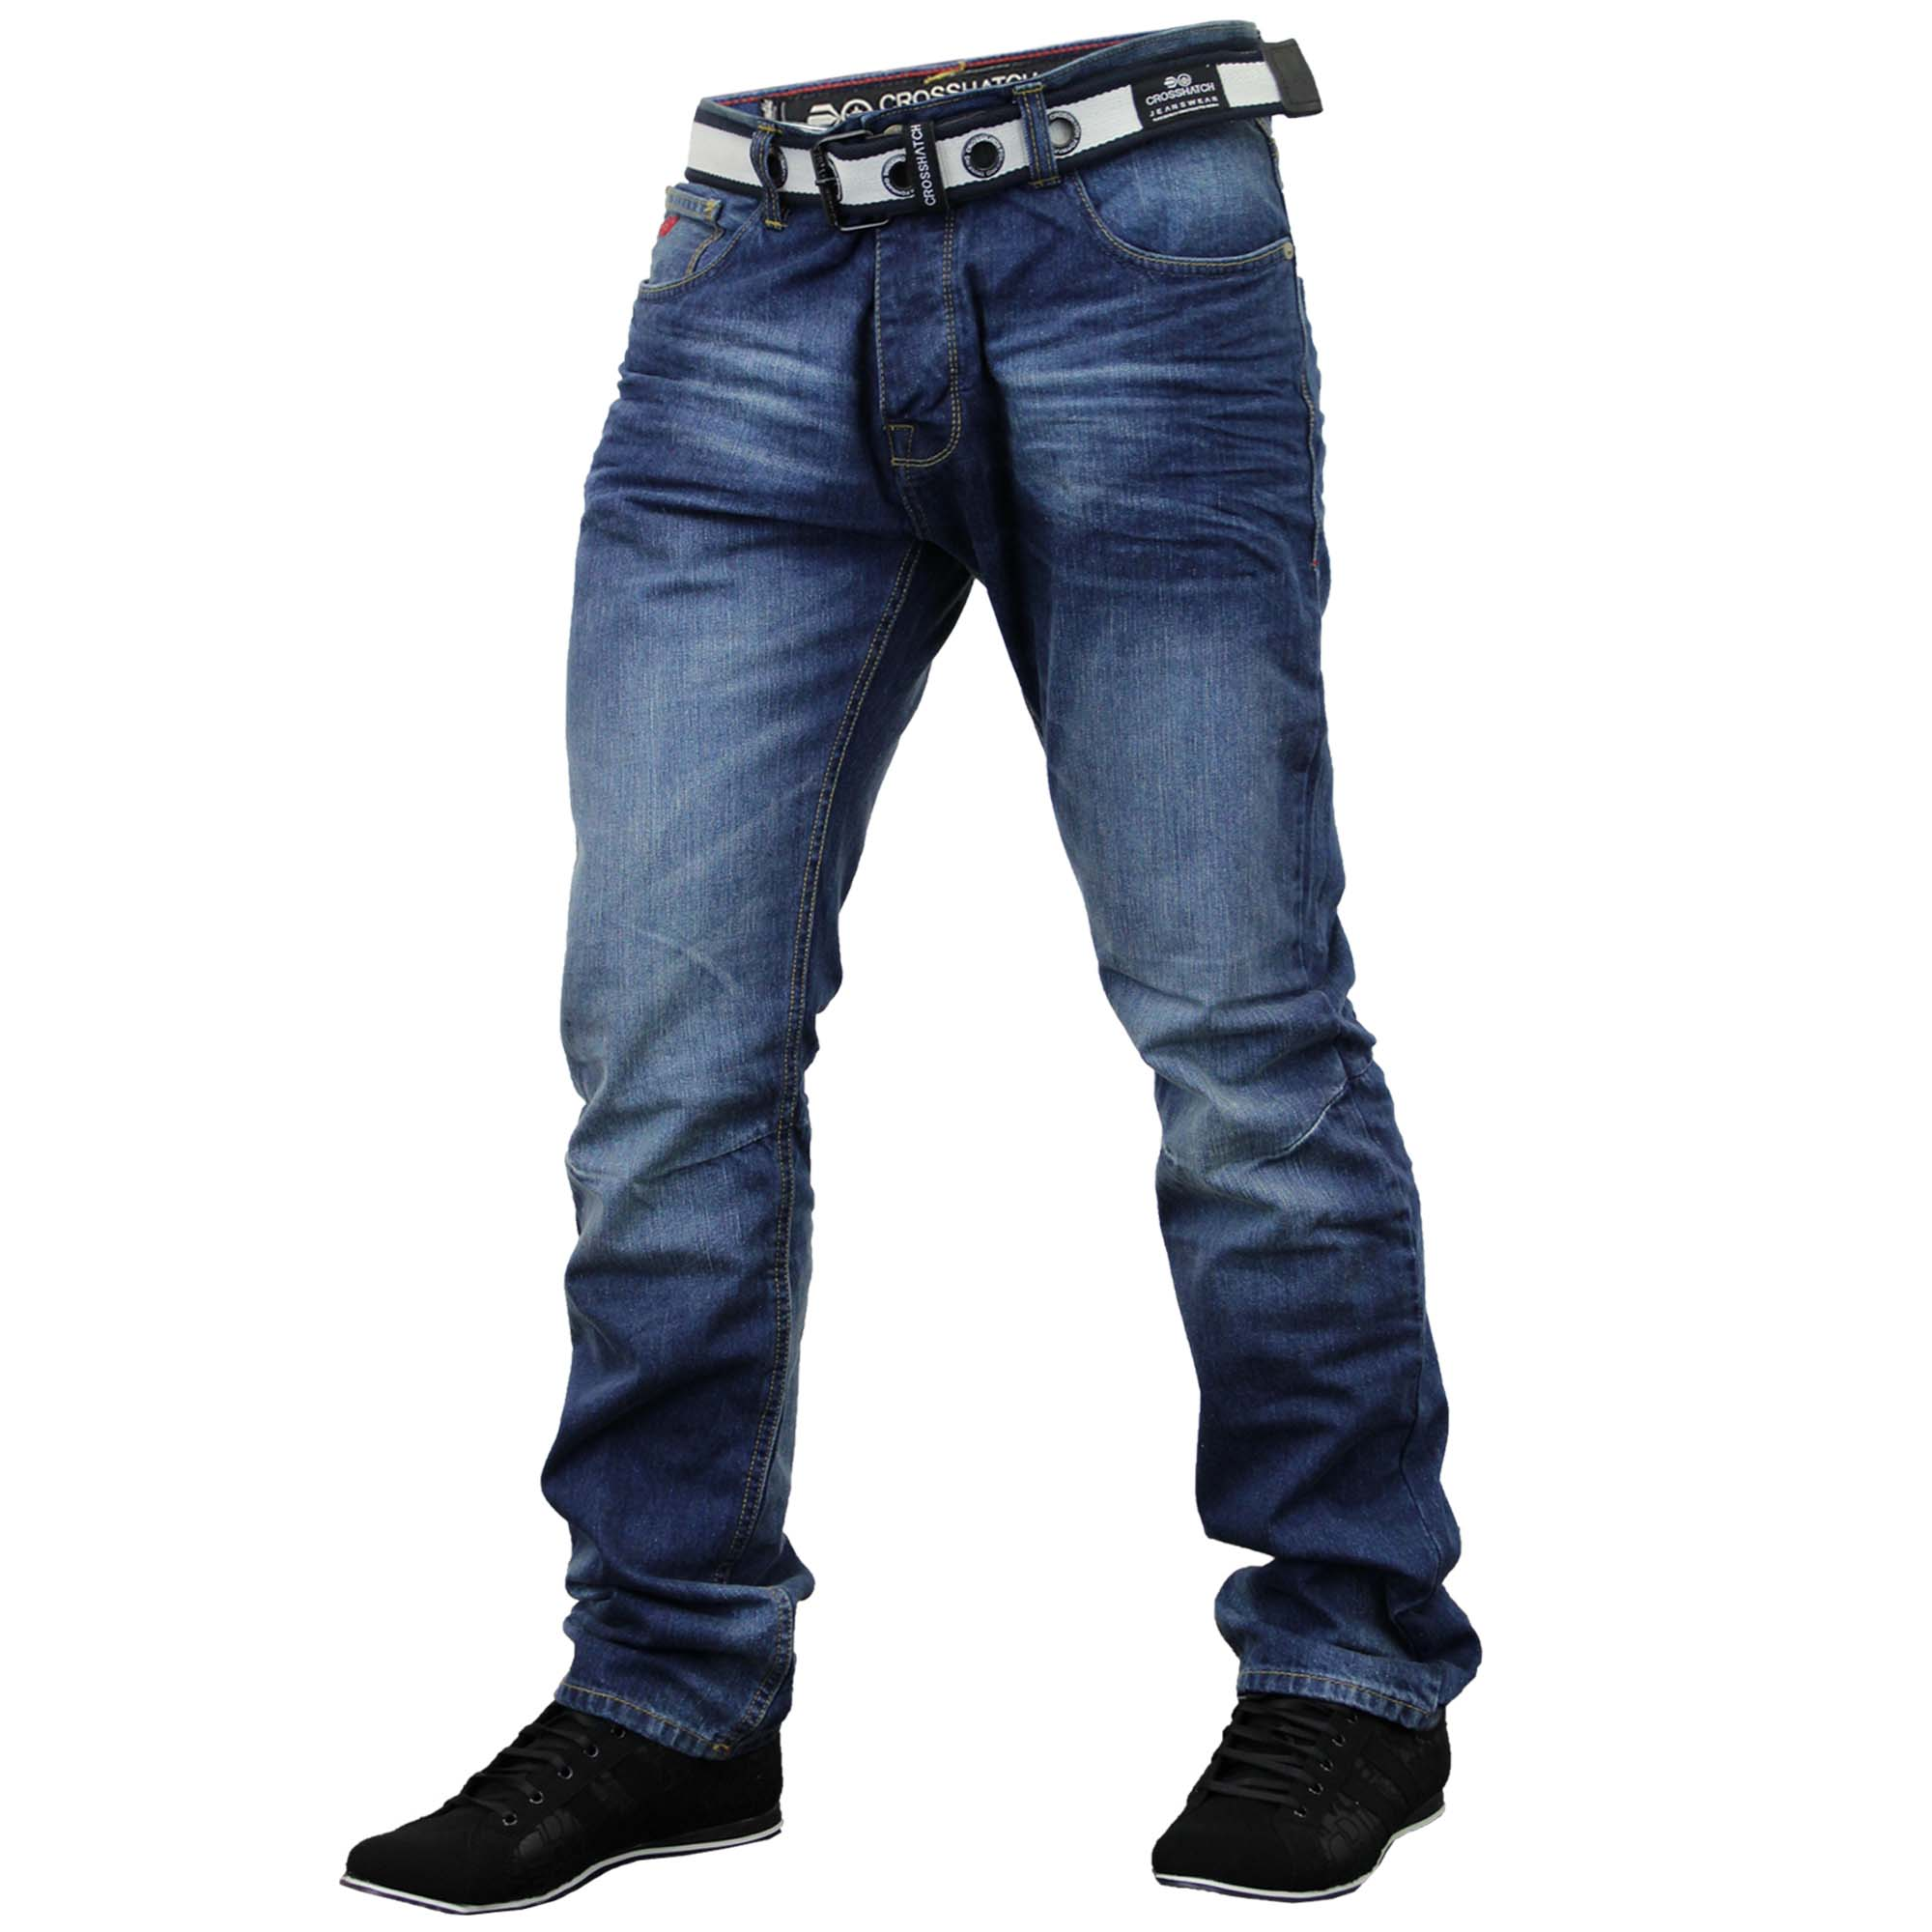 Jeans for Men Men's jeans are a guy's best friend. A staple in every wardrobe, jeans are the most versatile articles of clothing and Kohl's is the best place to find them.